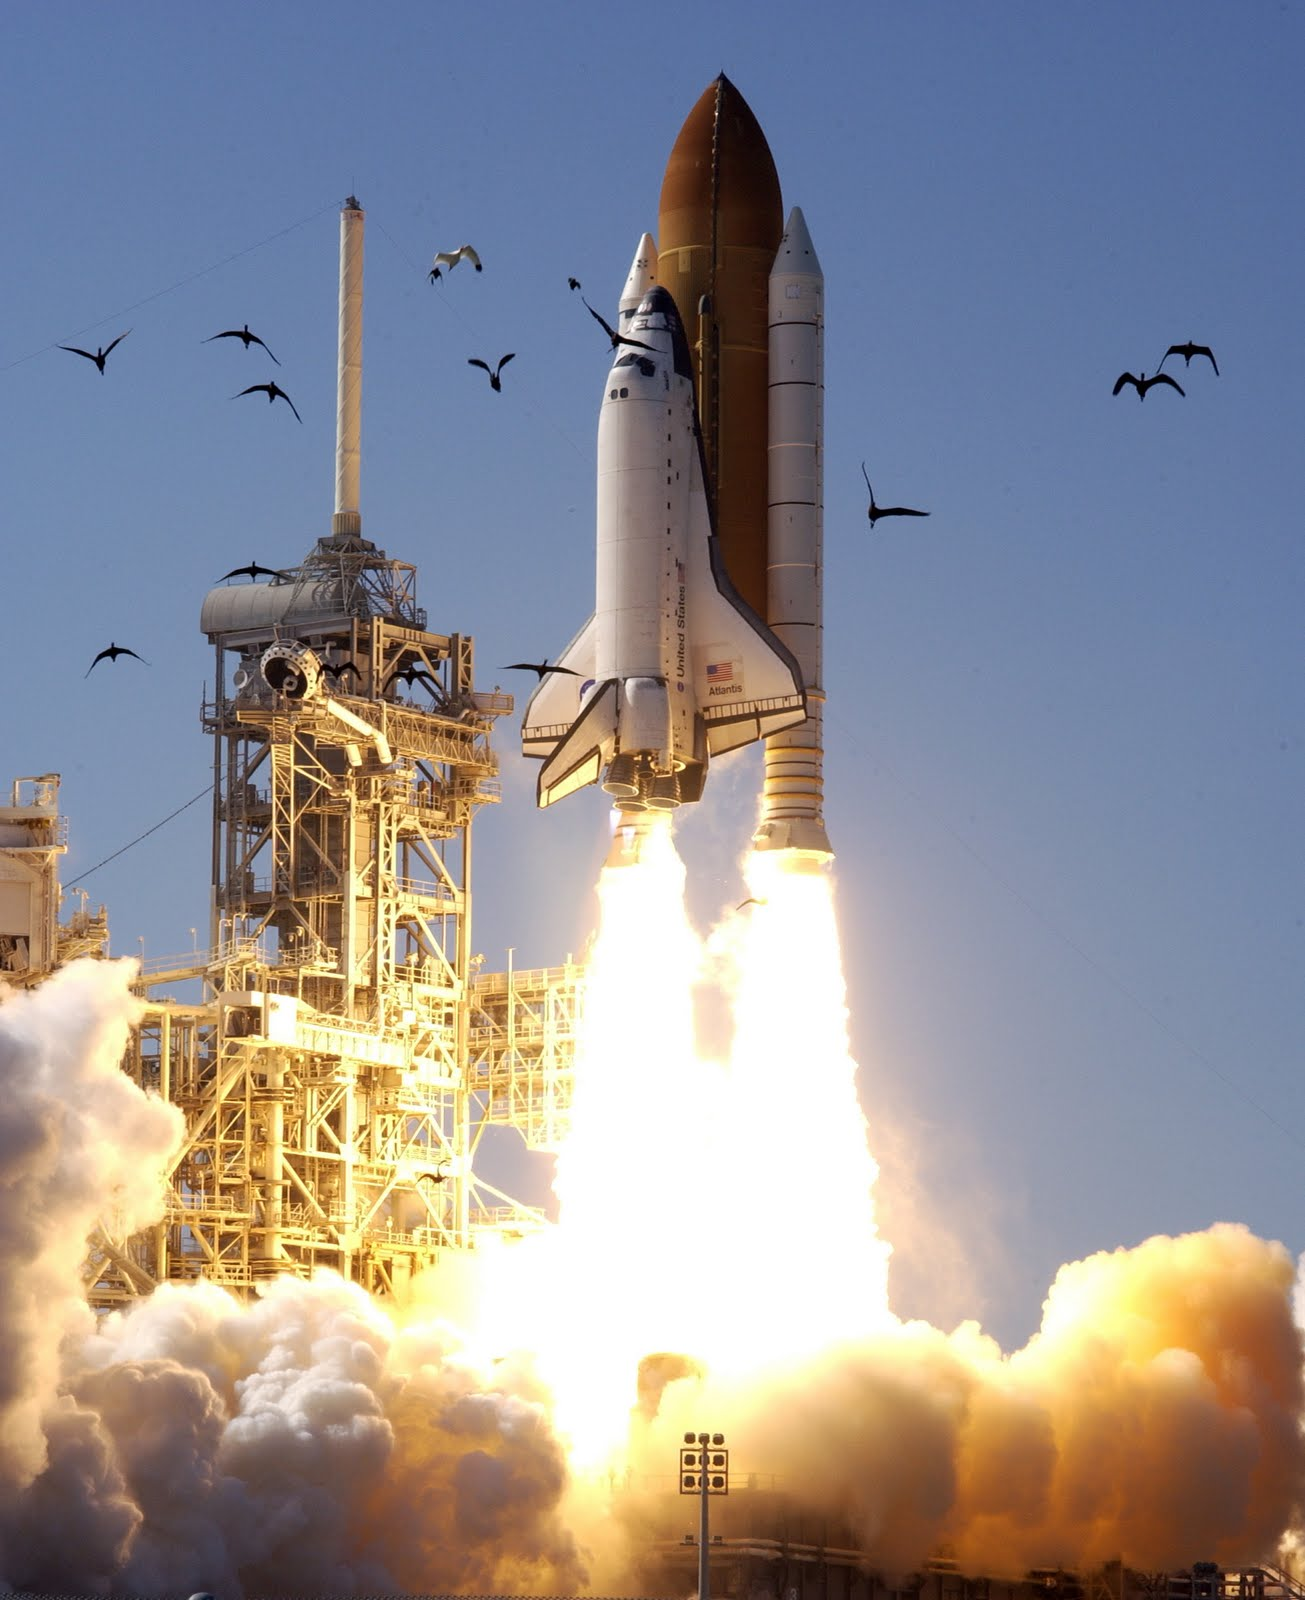 space shuttle atlantis accomplishments - photo #48